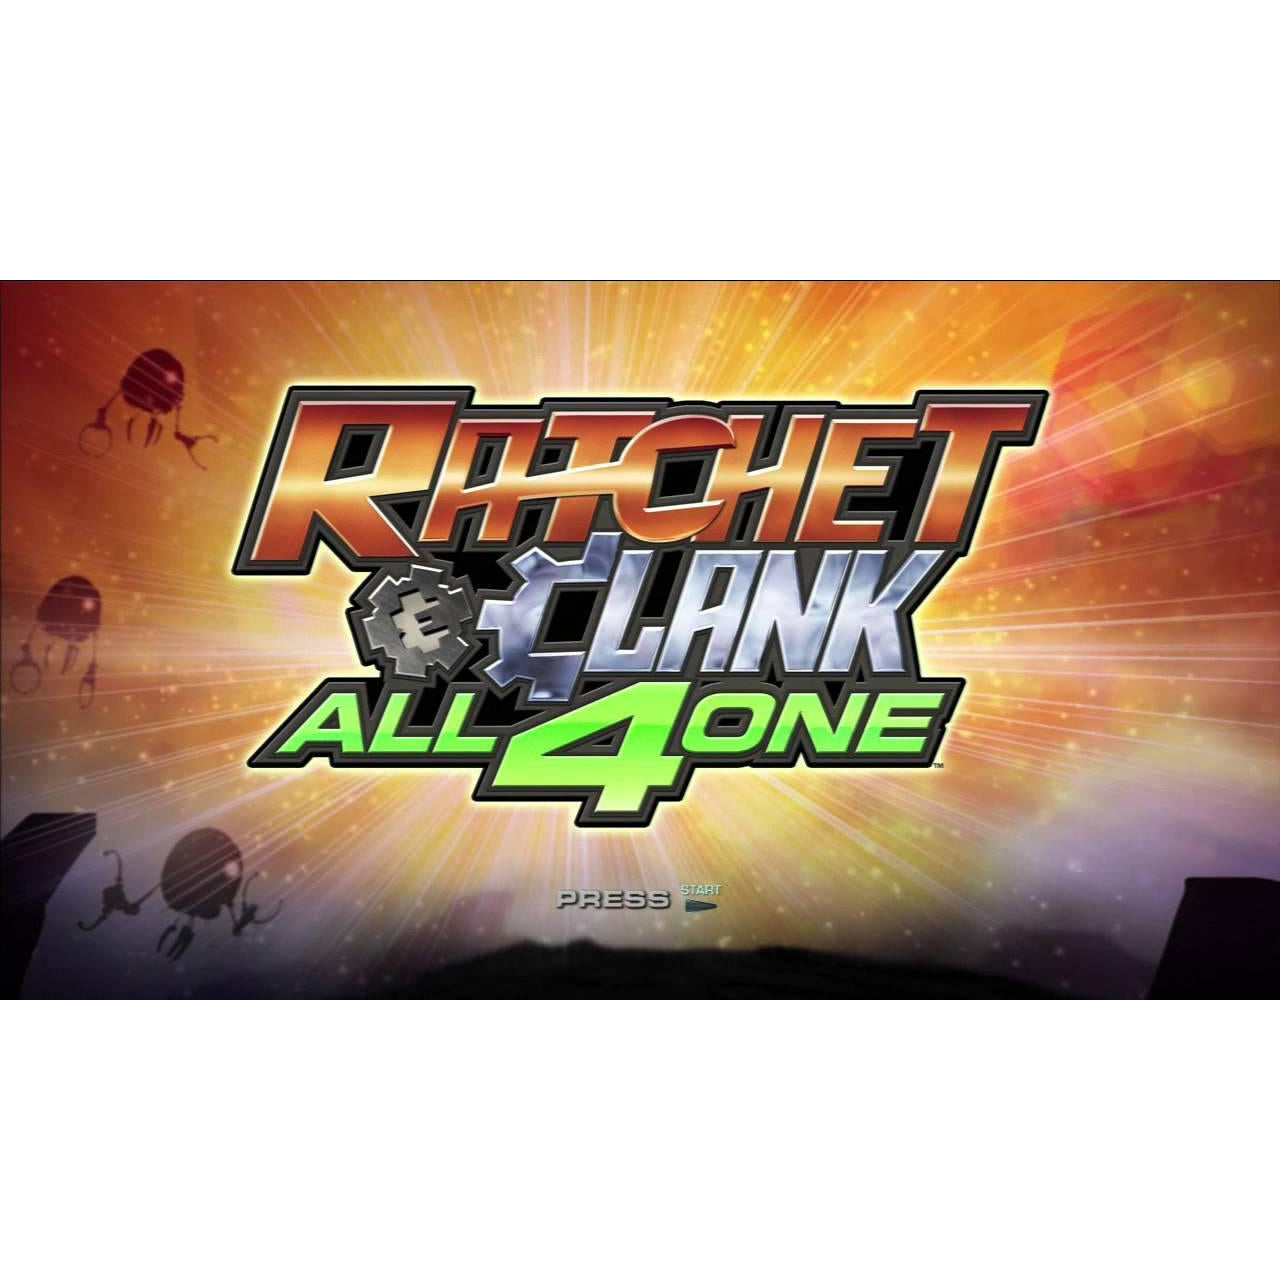 Ratchet and Clank: All 4 One - PlayStation 3 (PS3) Game